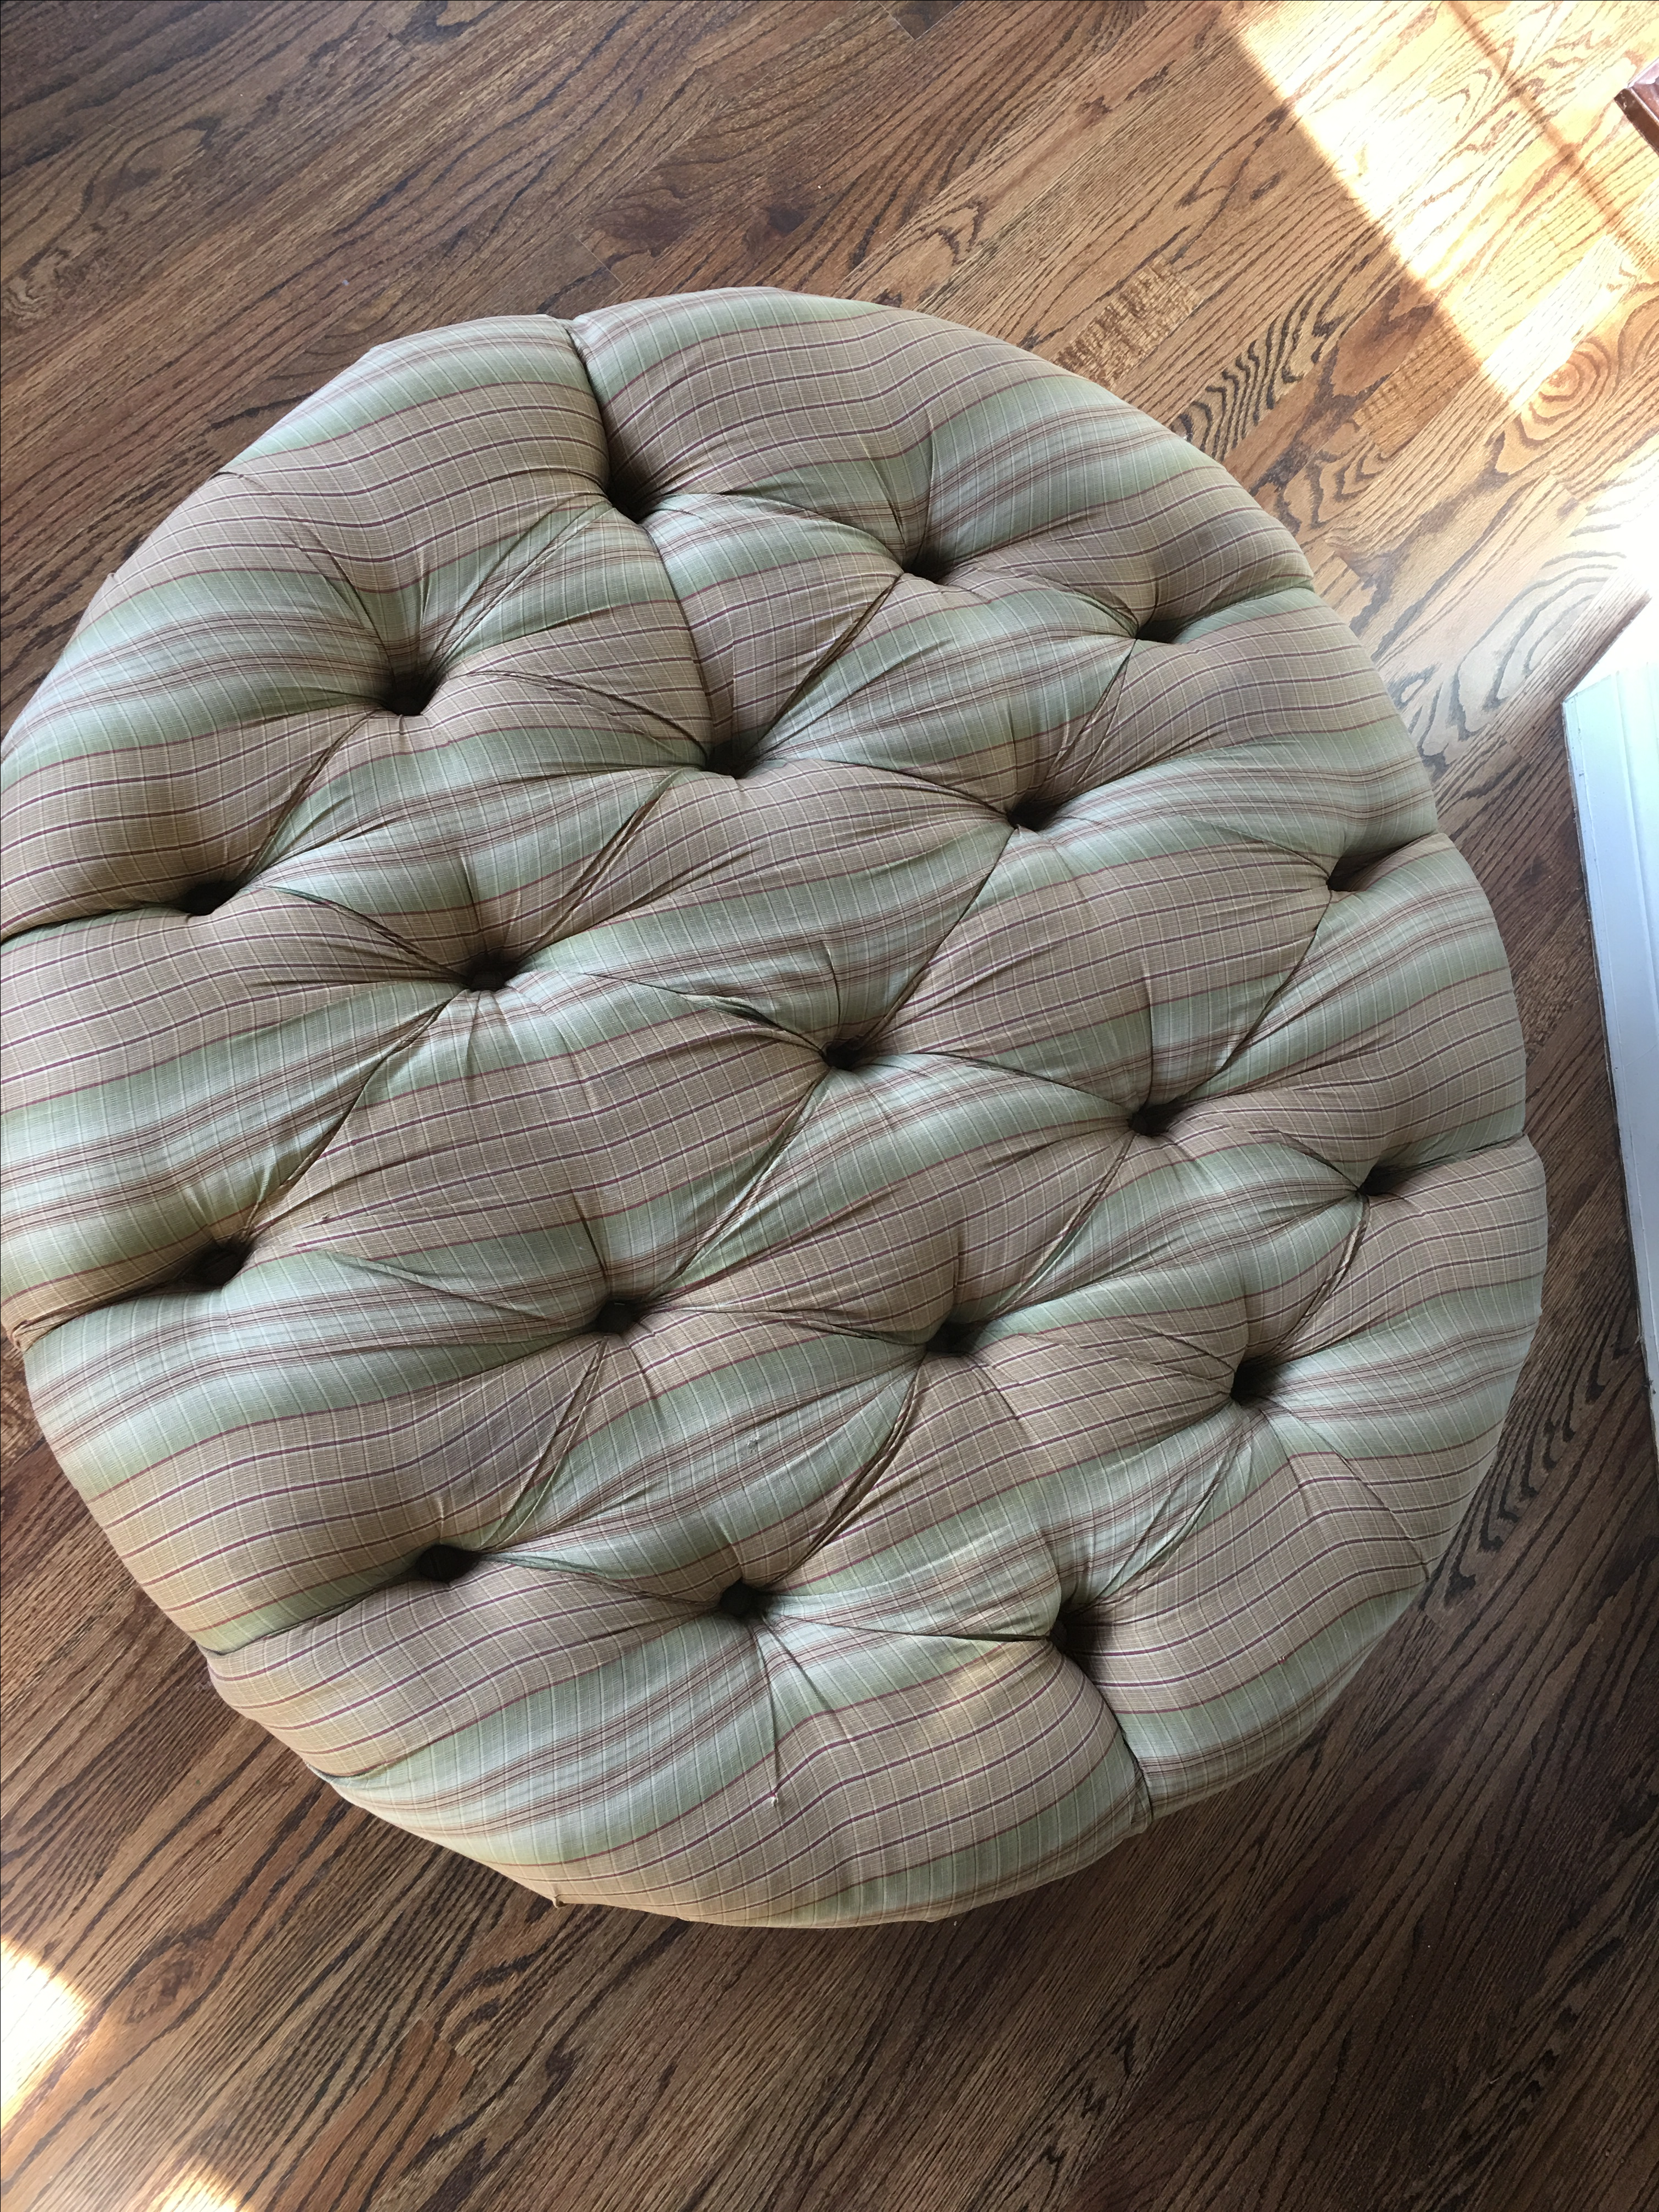 Large Plunkett Furniture Pinched Ottoman Footrest Pouf Tuffet   Image 3 Of  11